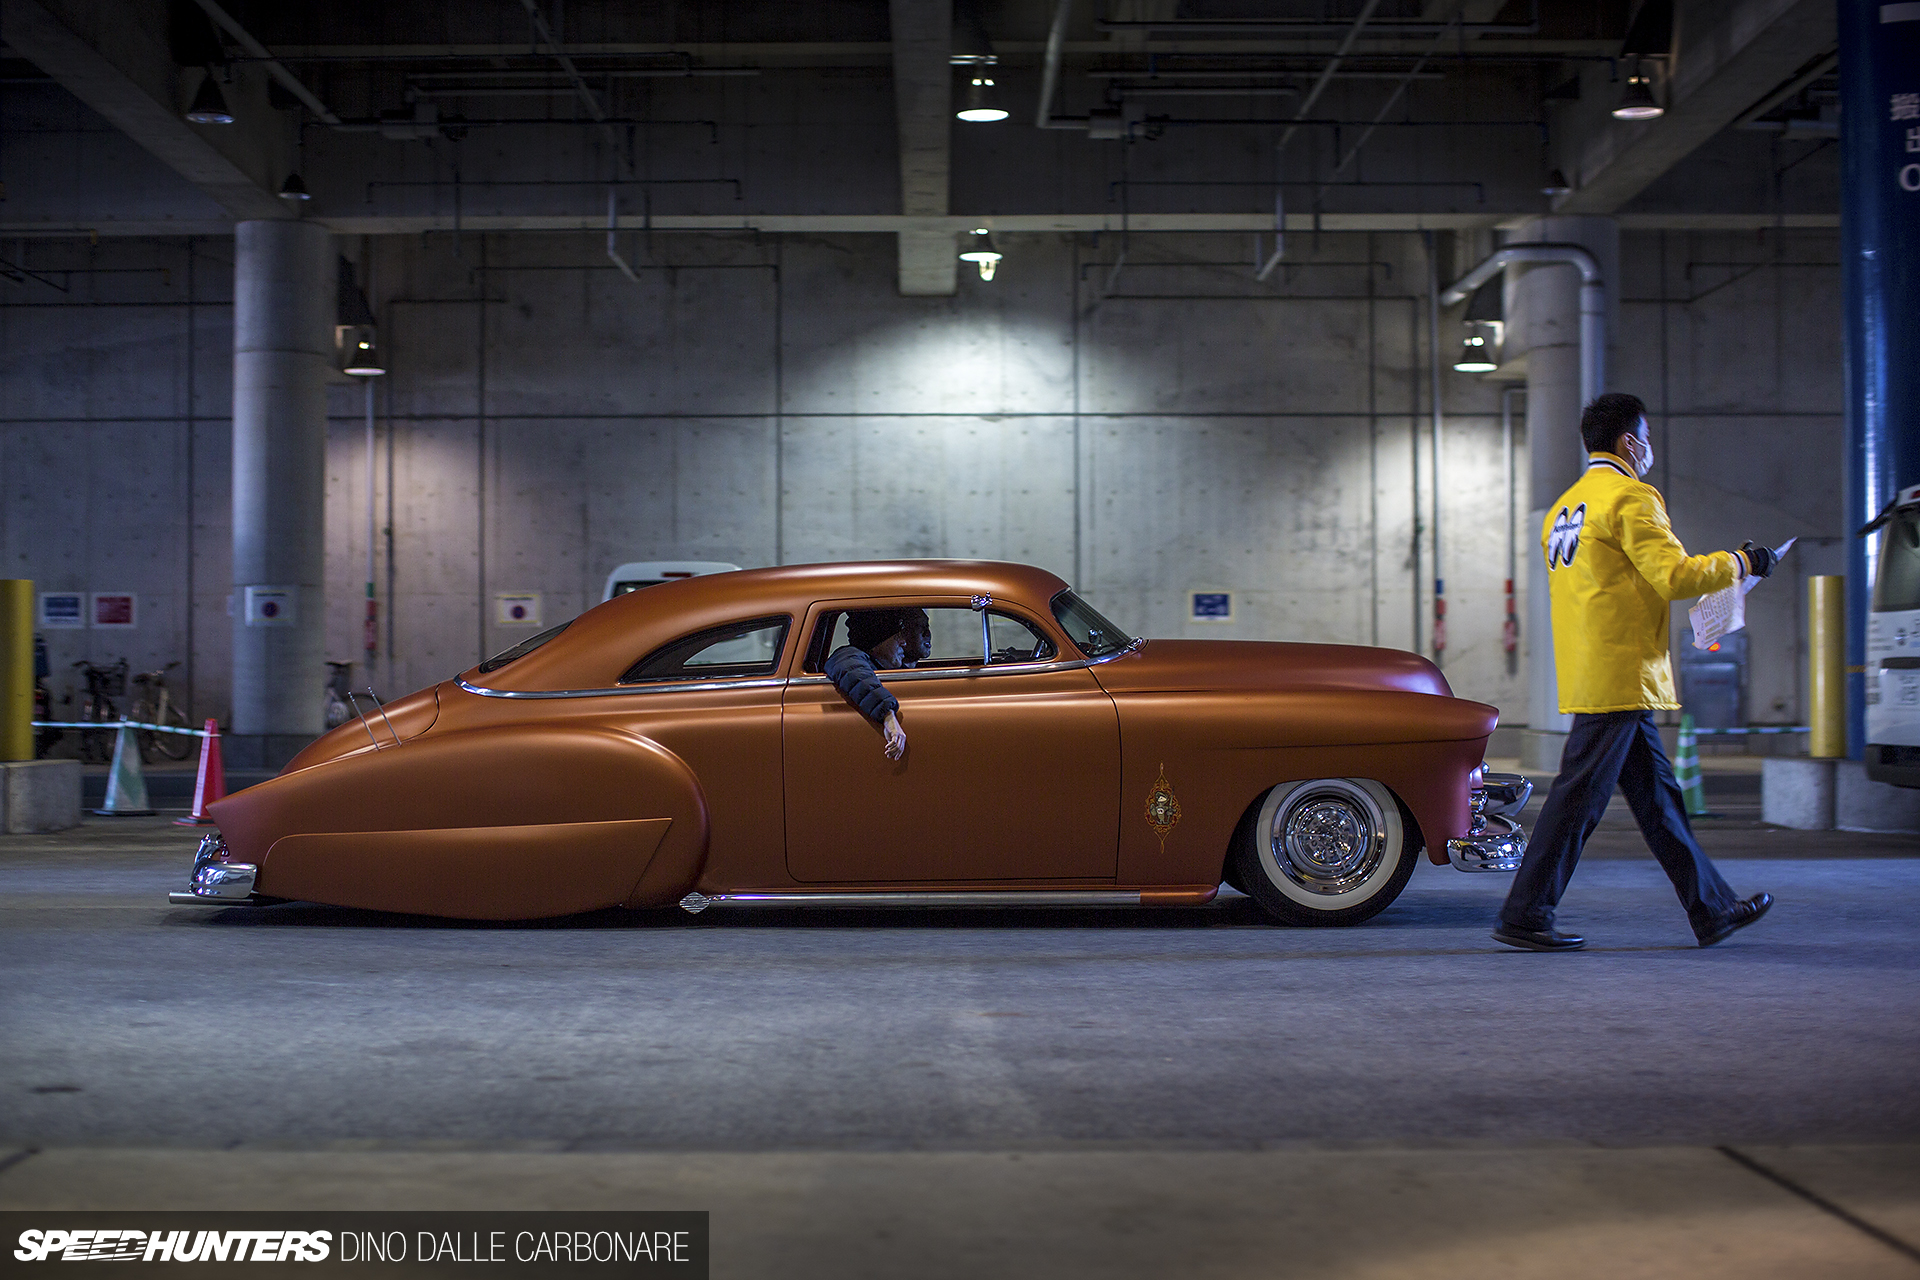 This Is Japanese Hot Rodding - Speedhunters